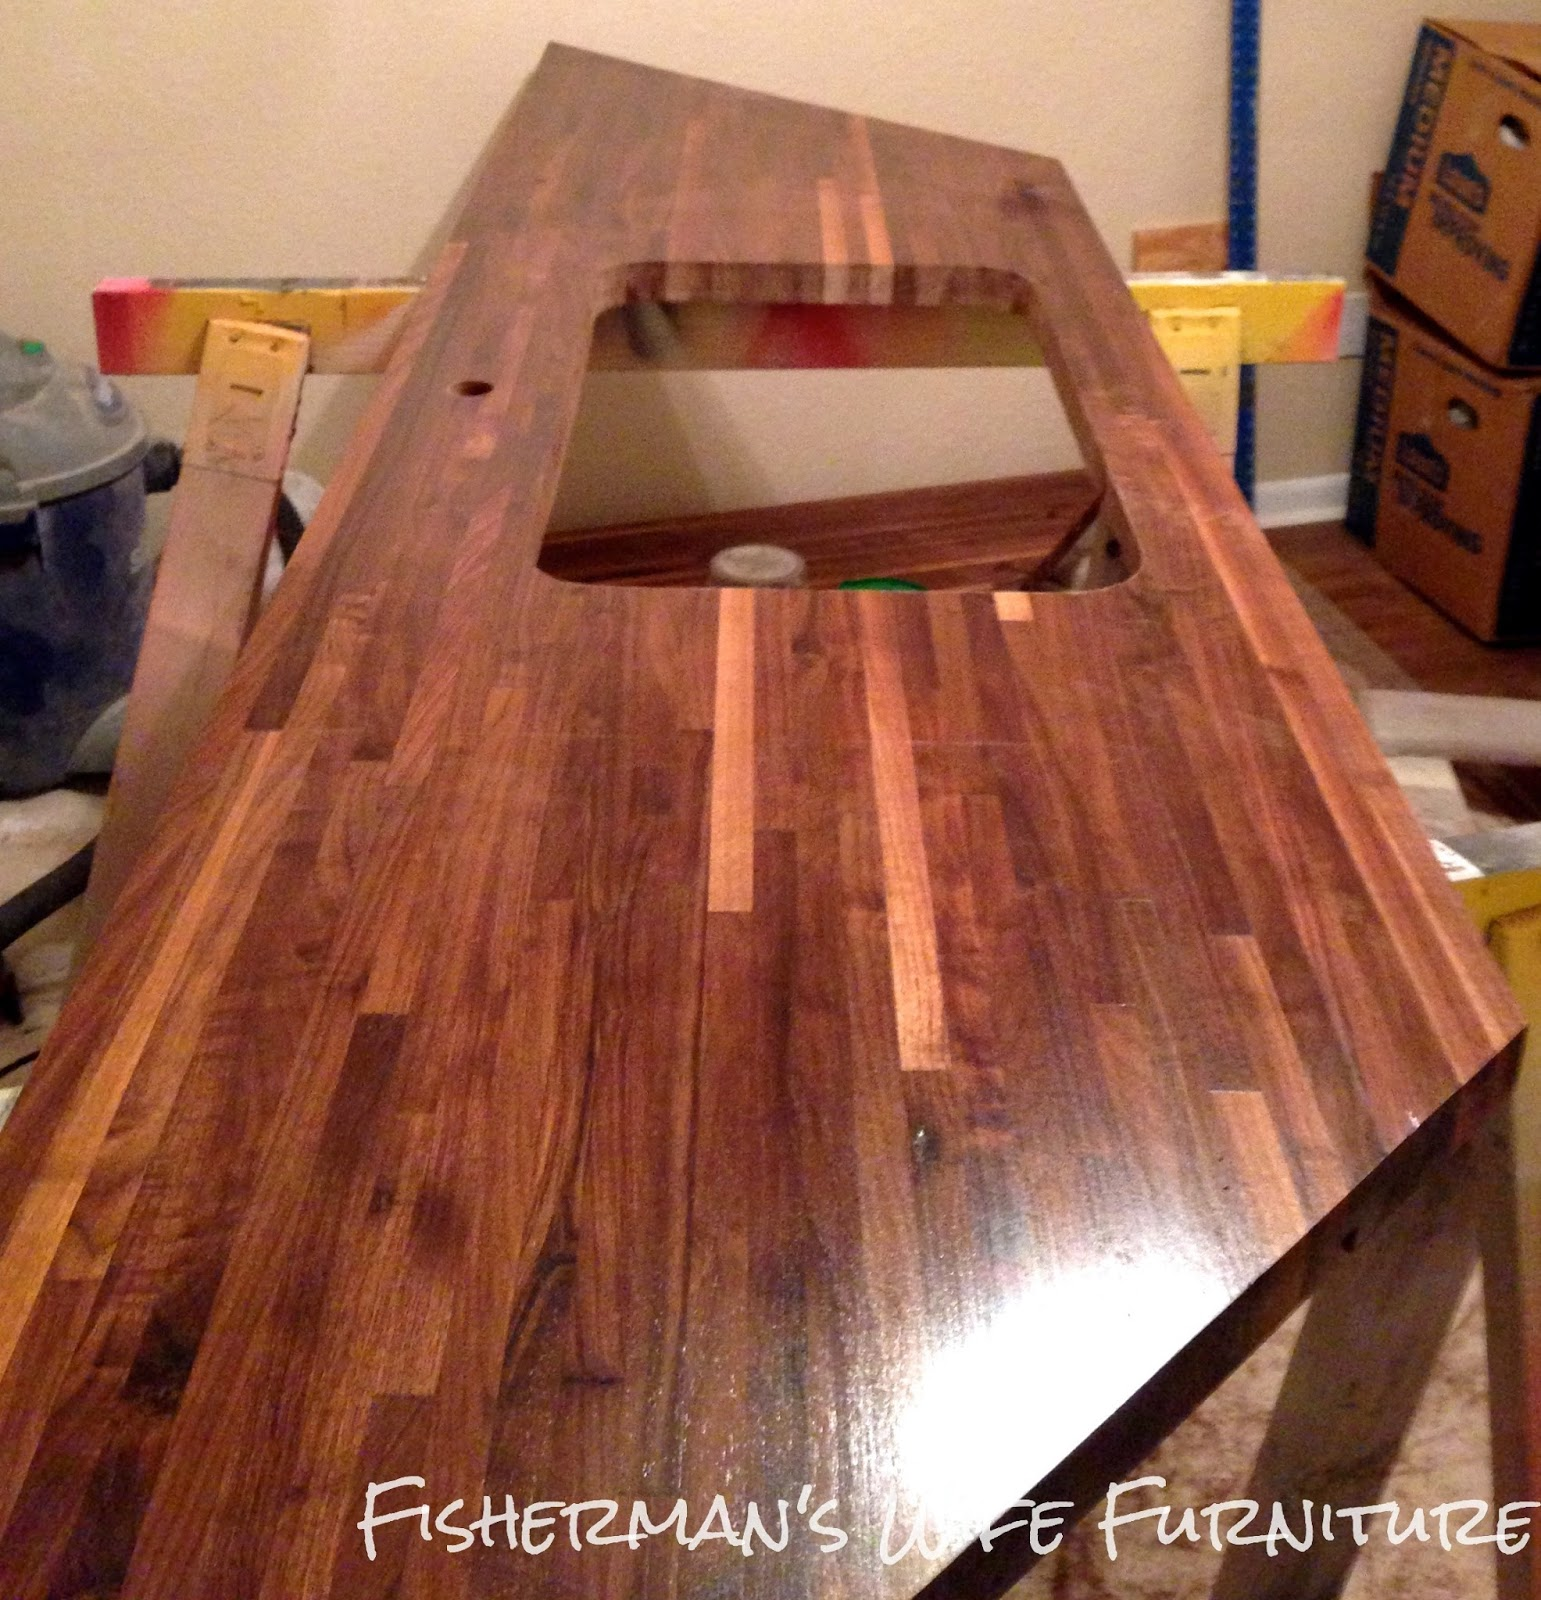 Fisherman 39 s wife furniture diy butcher block countertops for Installing butcher block countertops